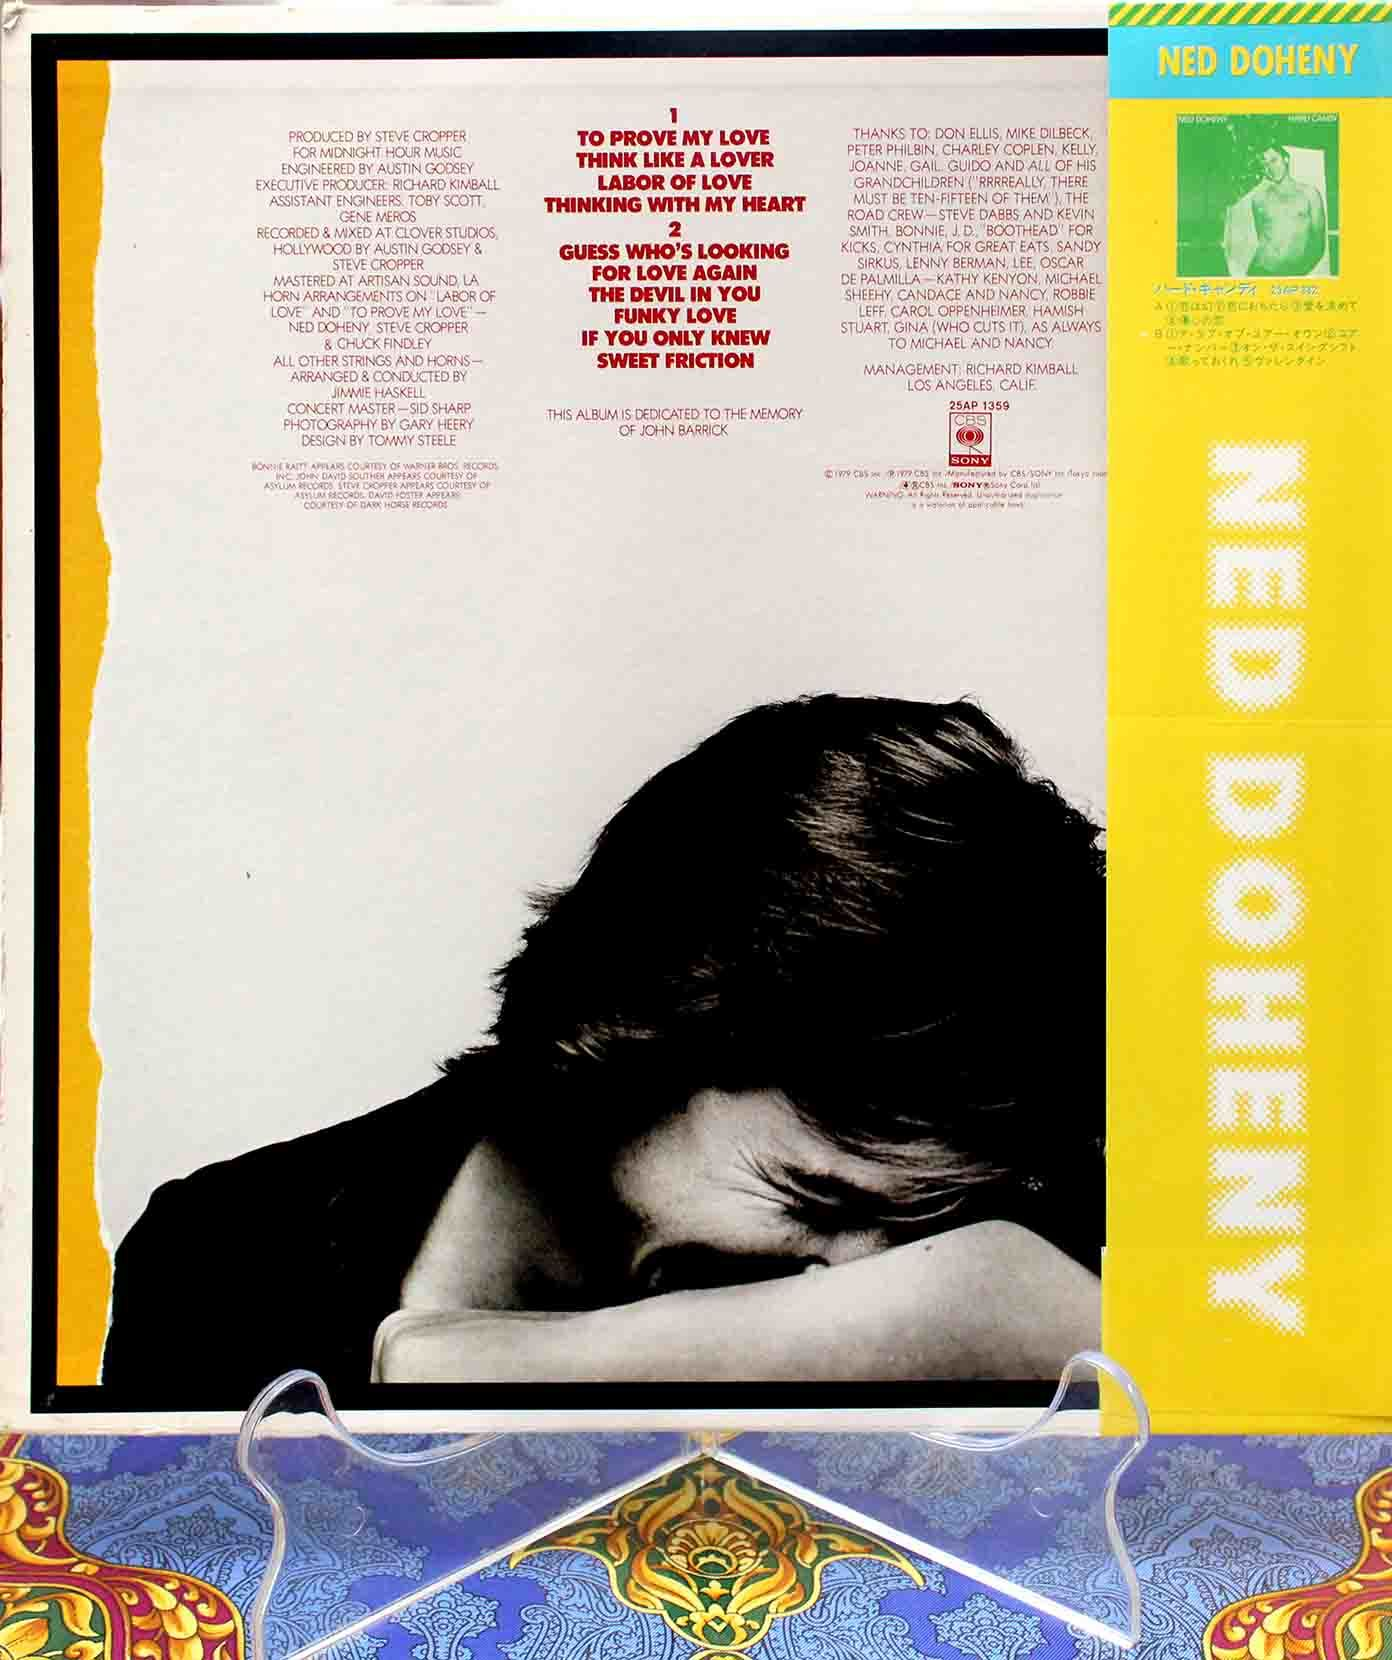 Ned Doheny Prone 02